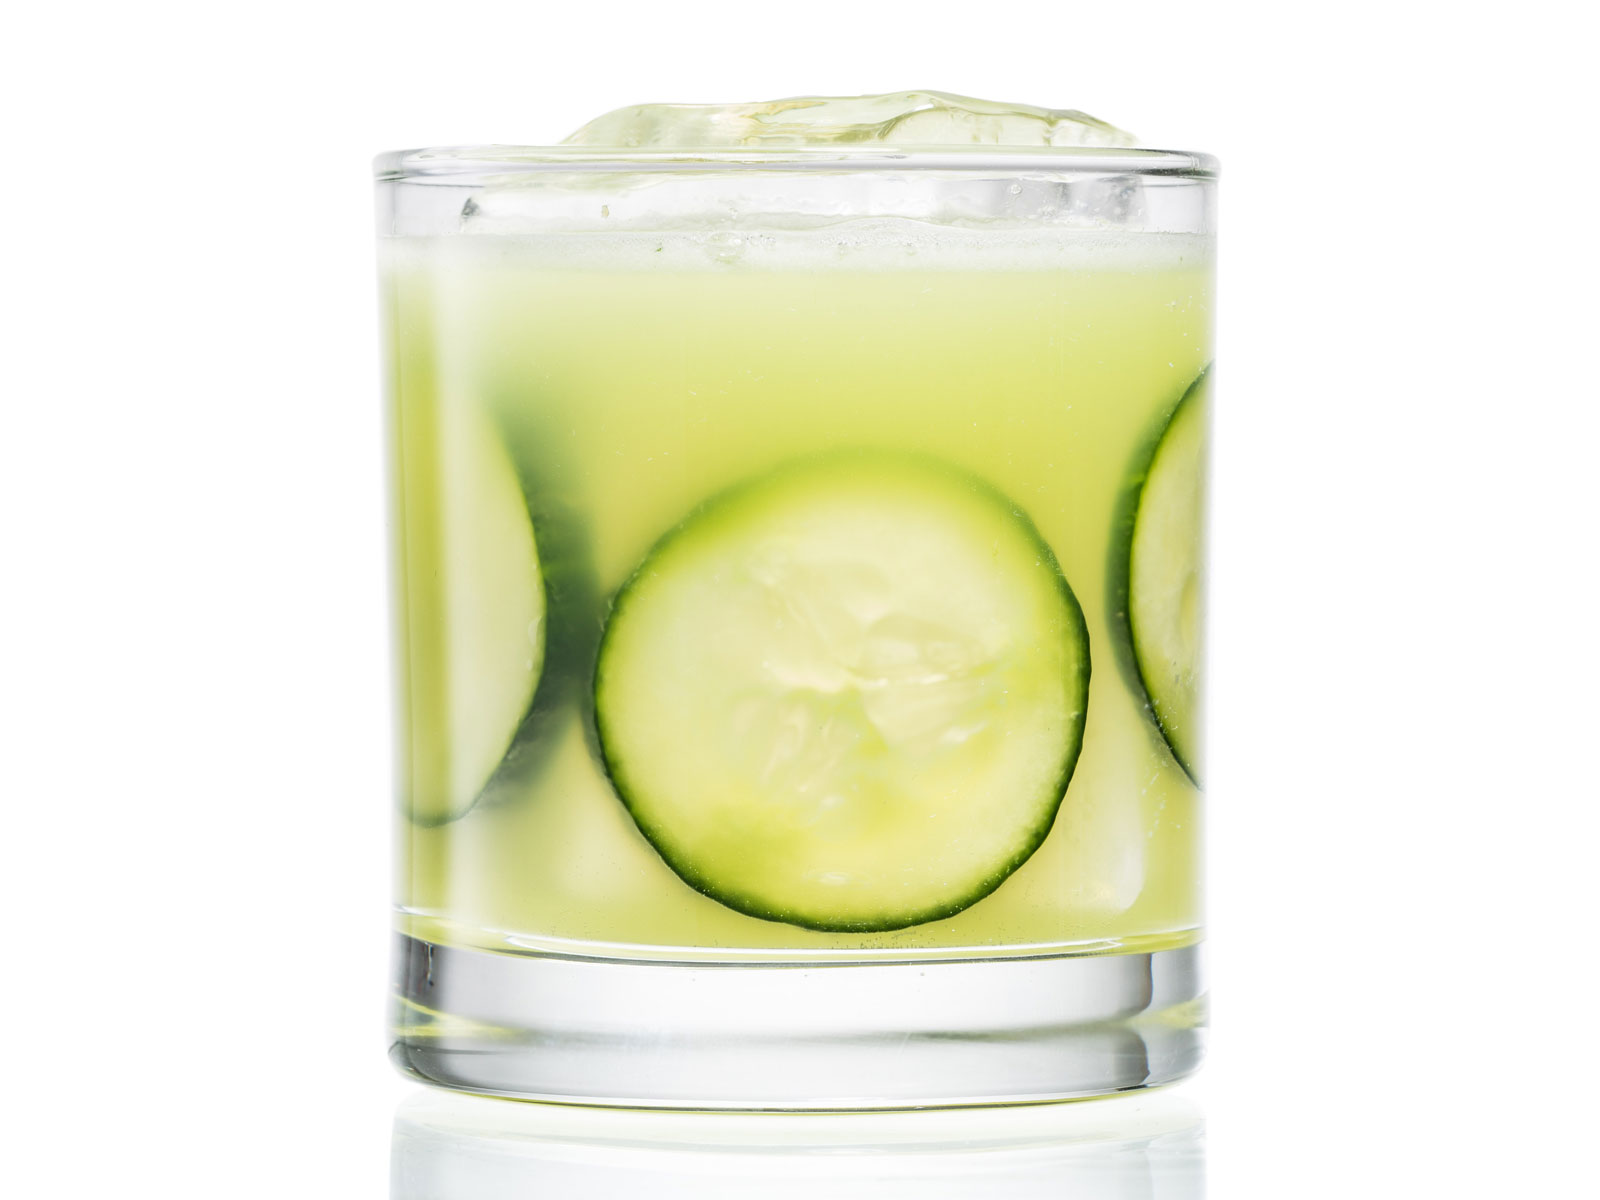 new-maid-cucumber-cocktail-ft-0918.jpg